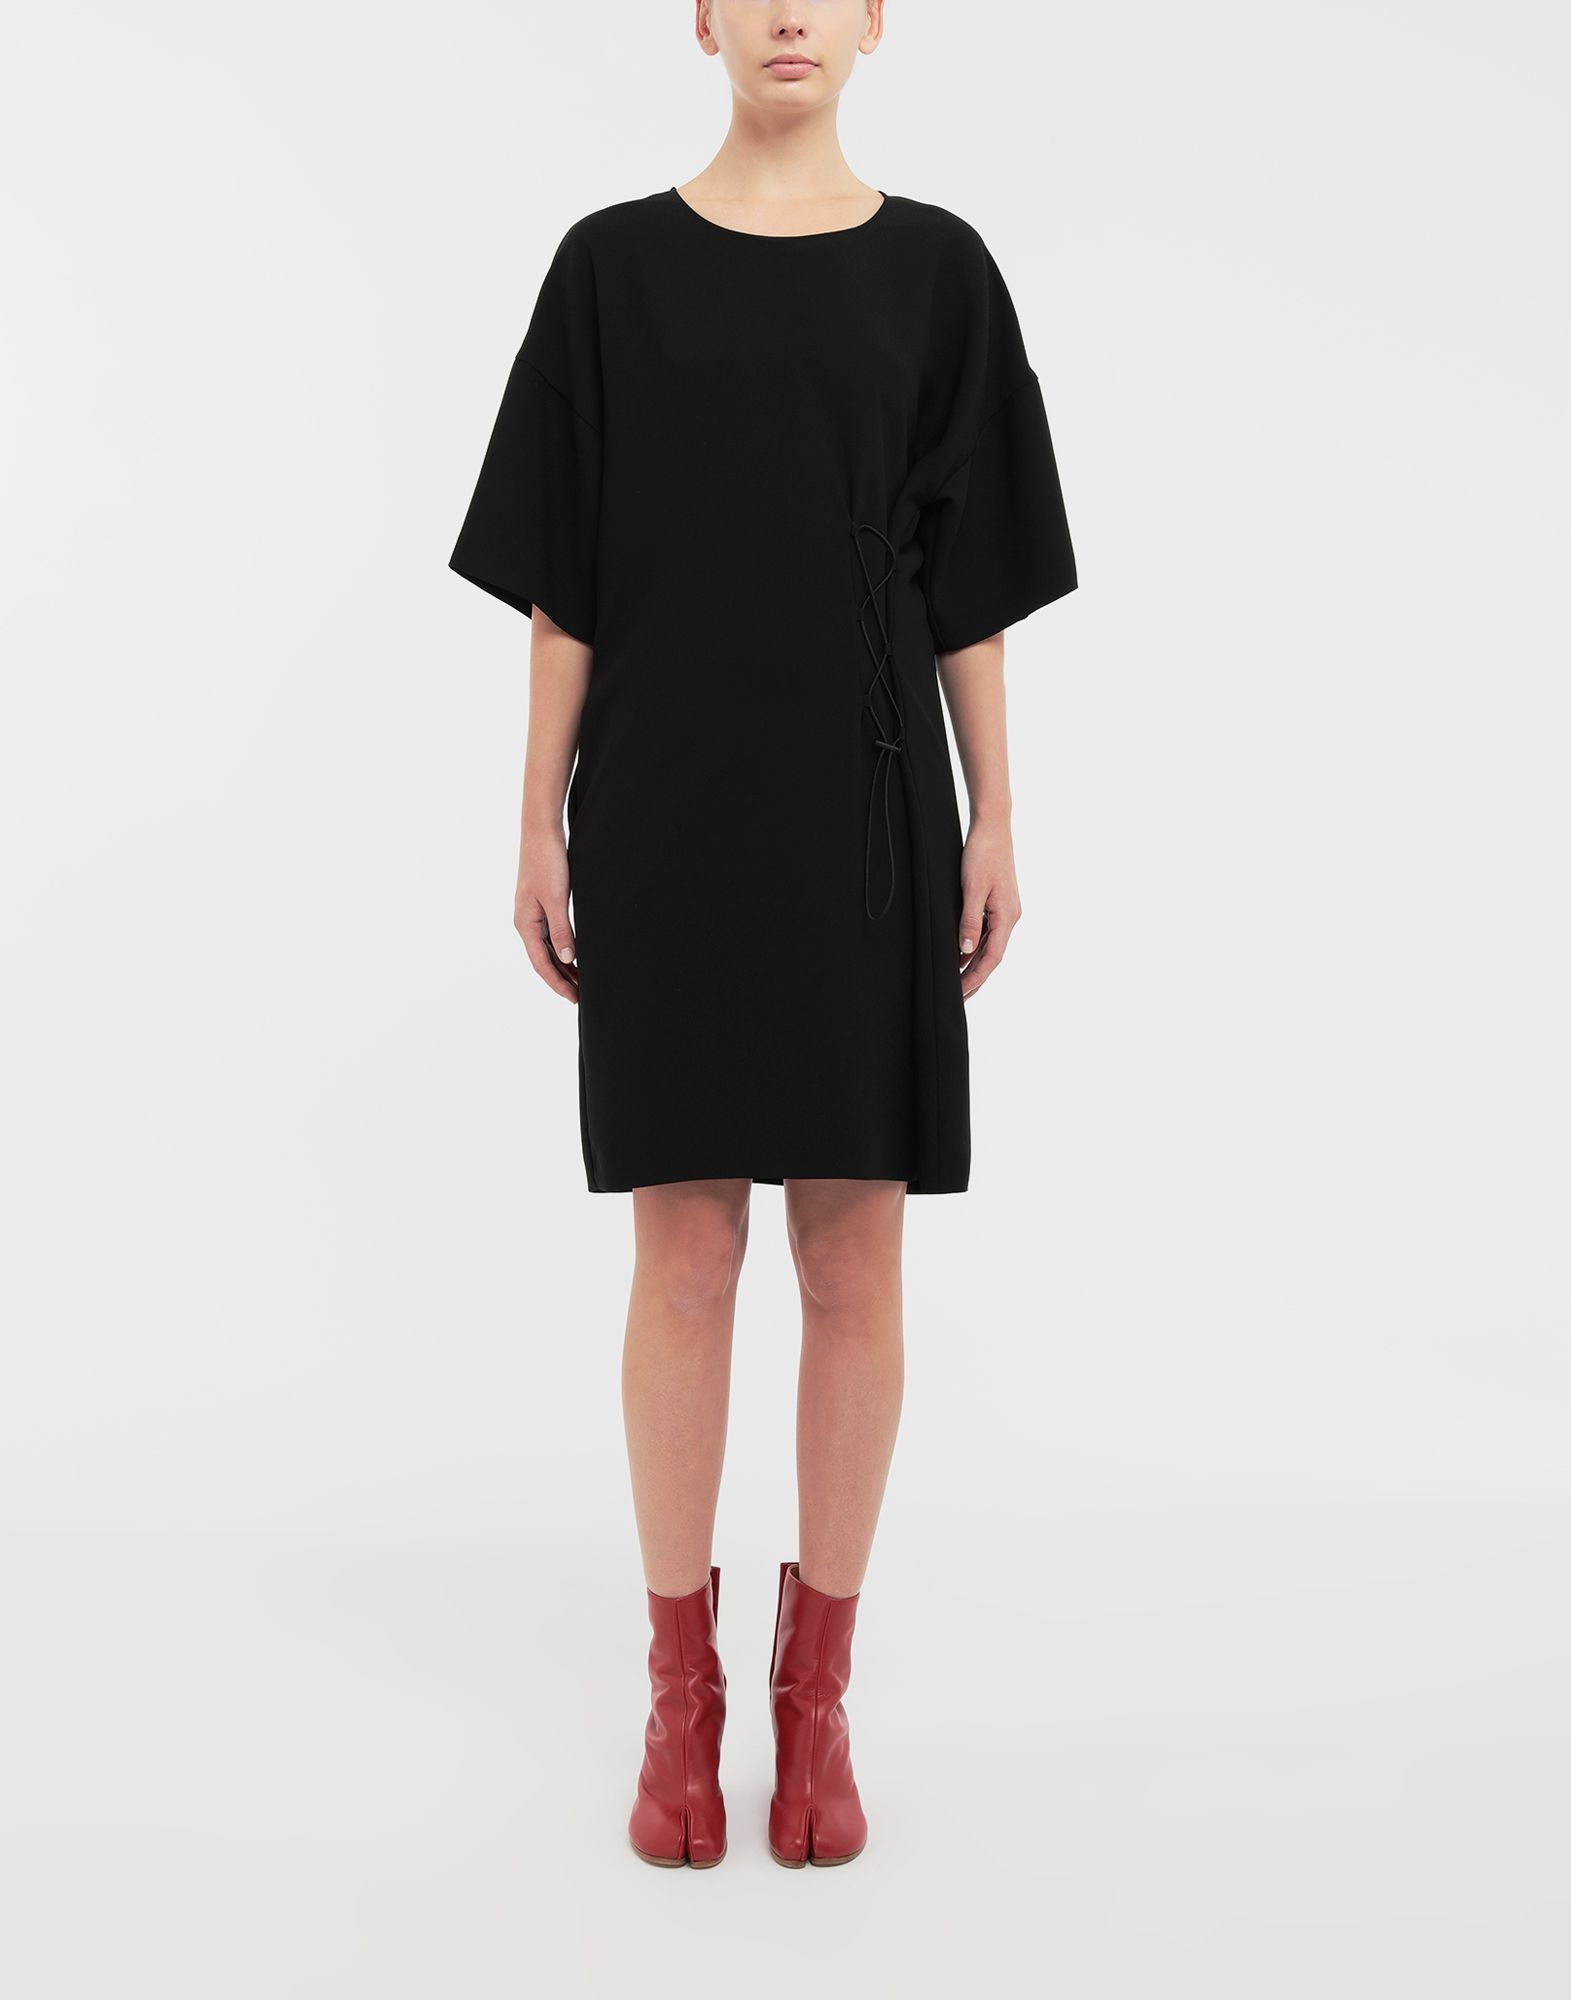 MAISON MARGIELA Lace-up jersey midi dress Short dress Woman r